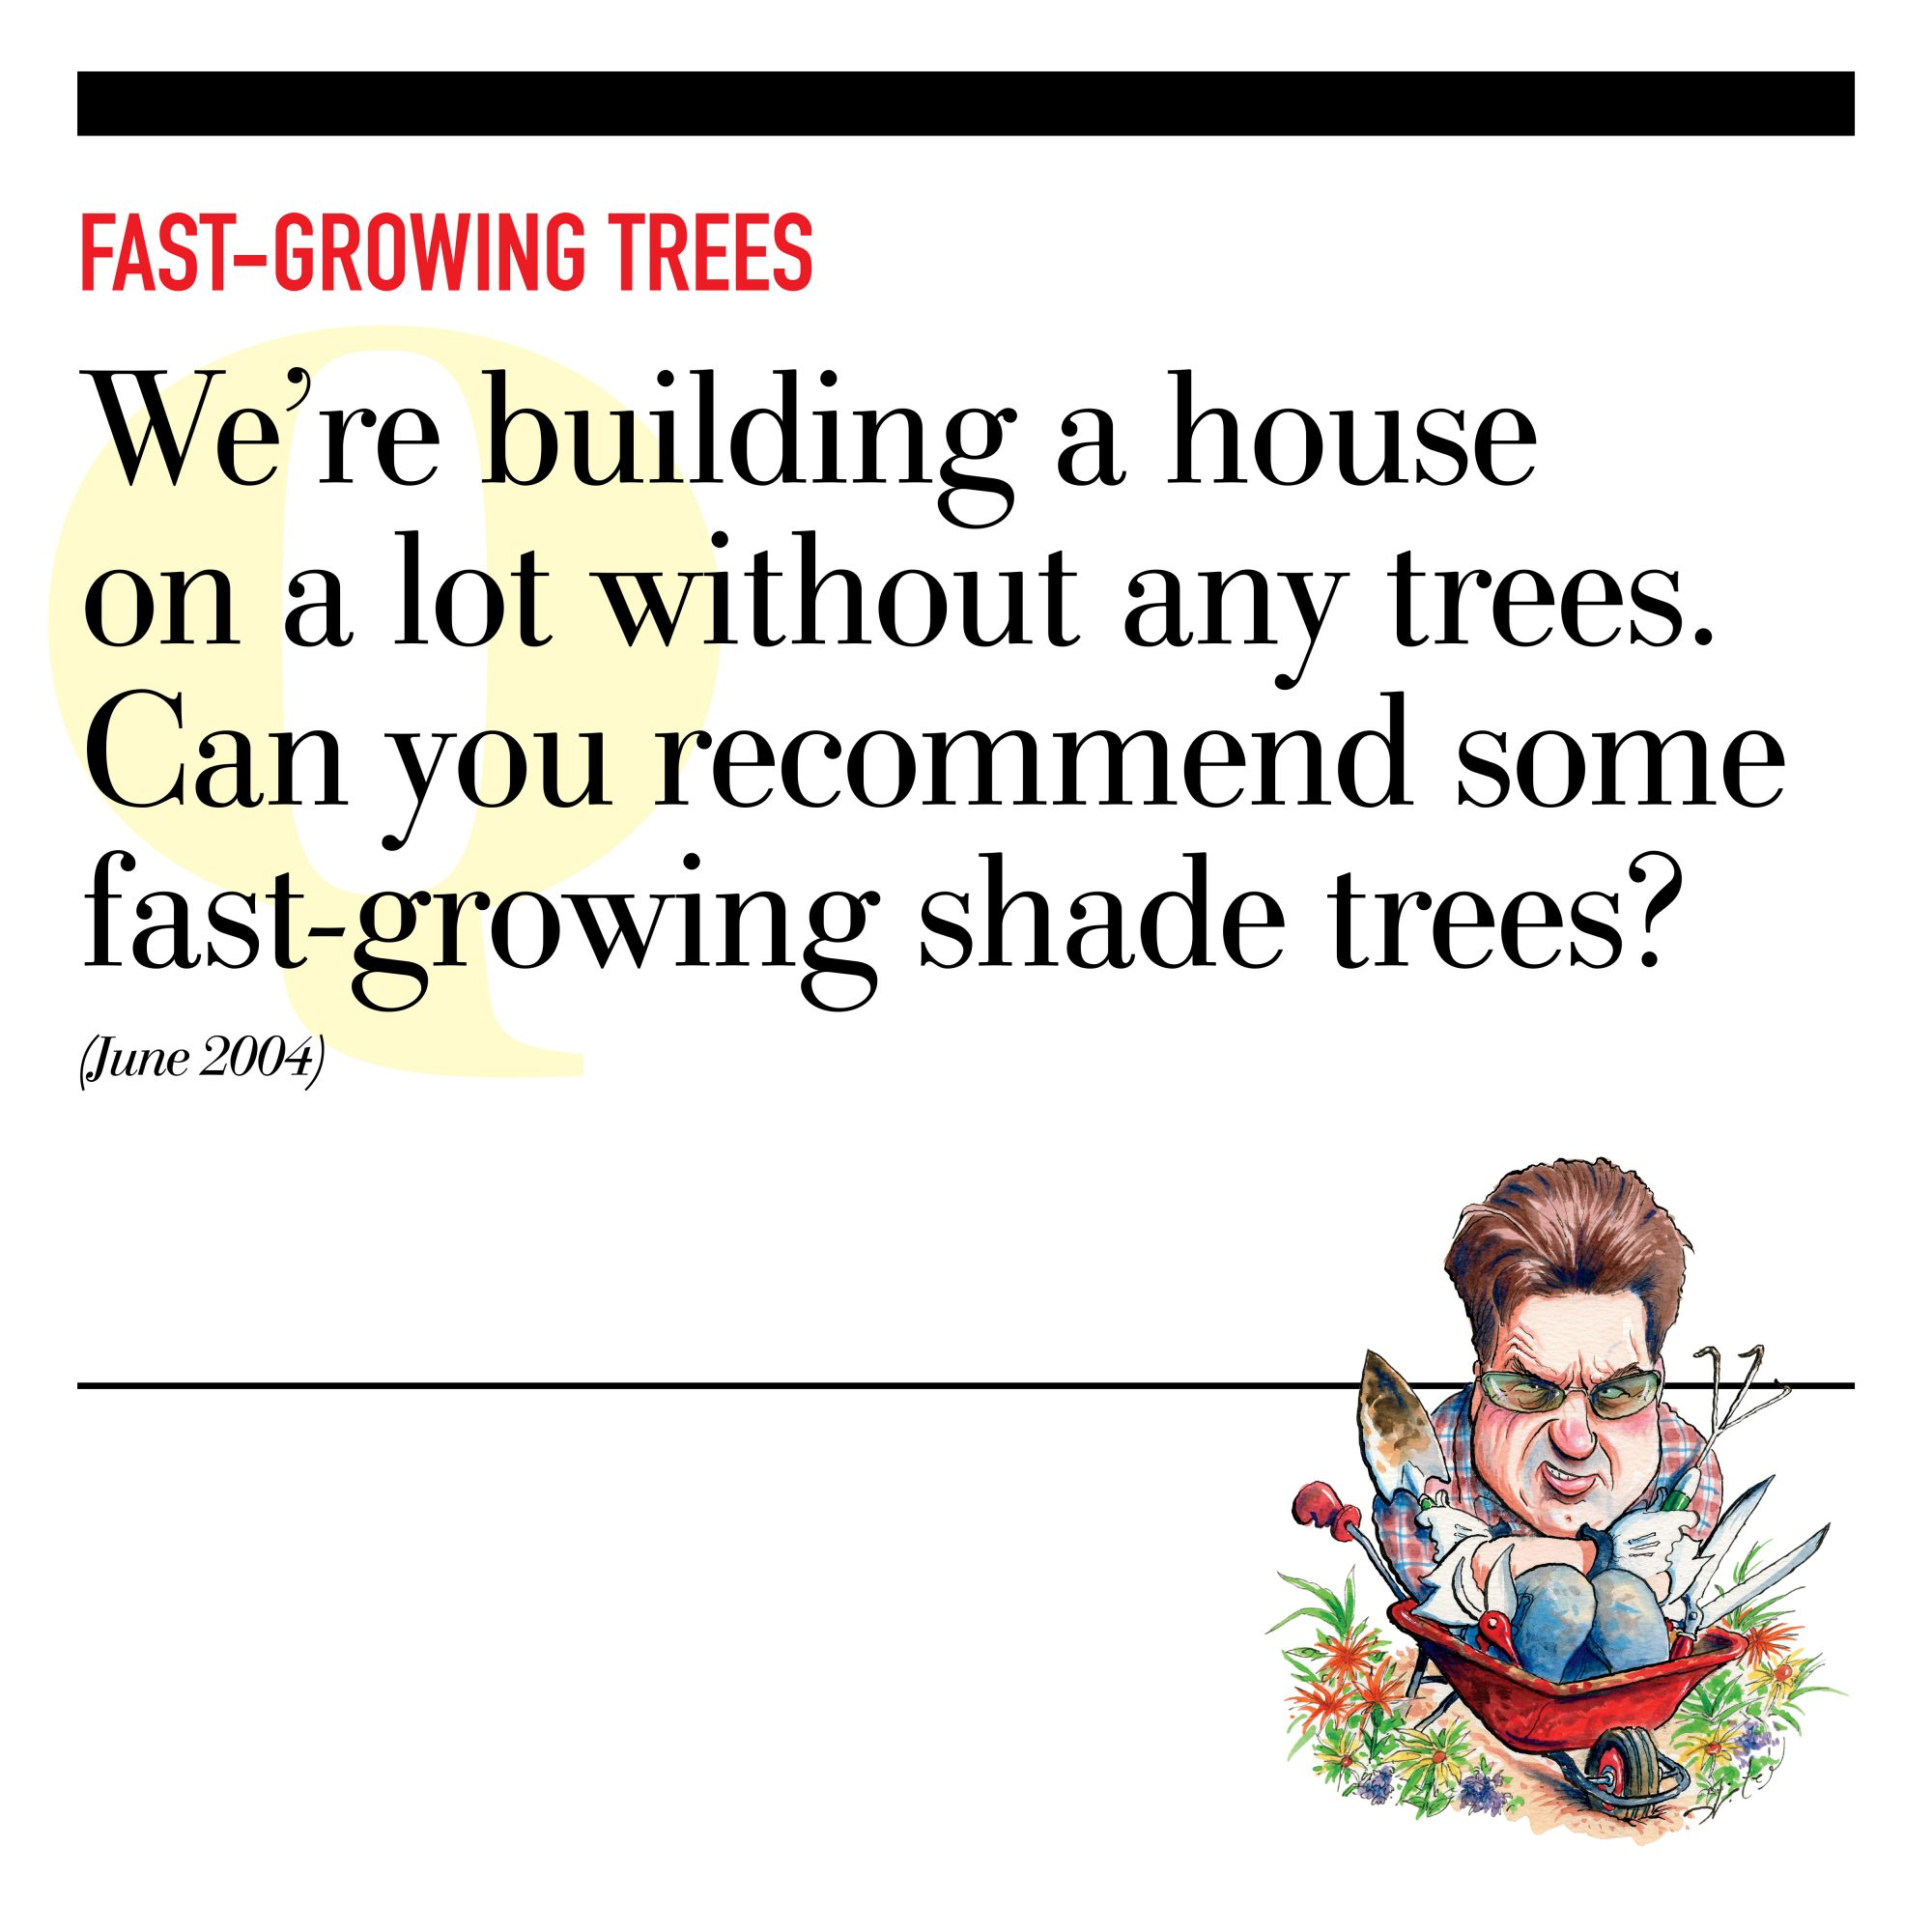 Fast-Growing Trees